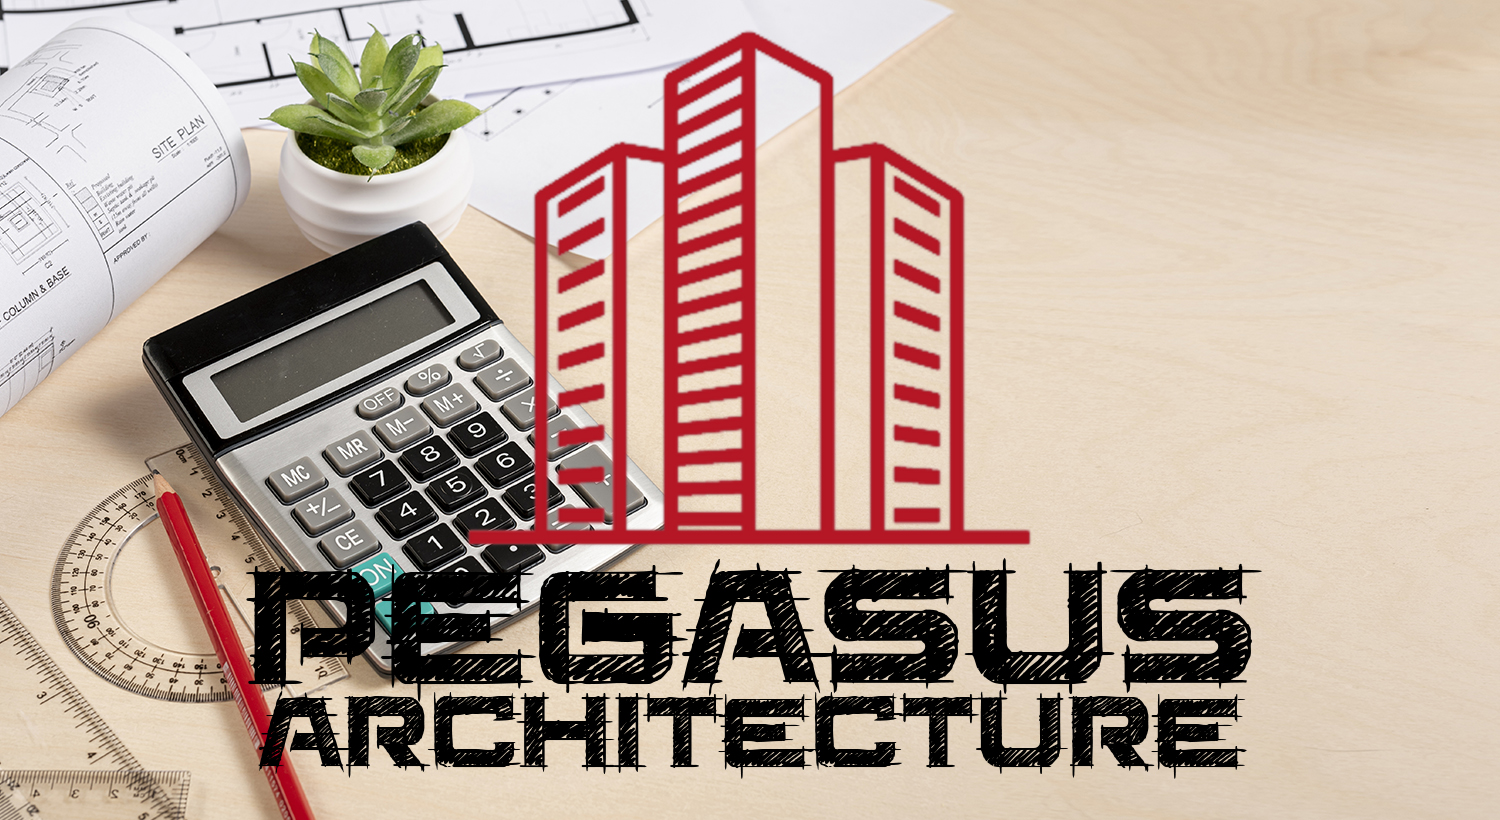 Daily Logo Challenge – Pegasus Architecture